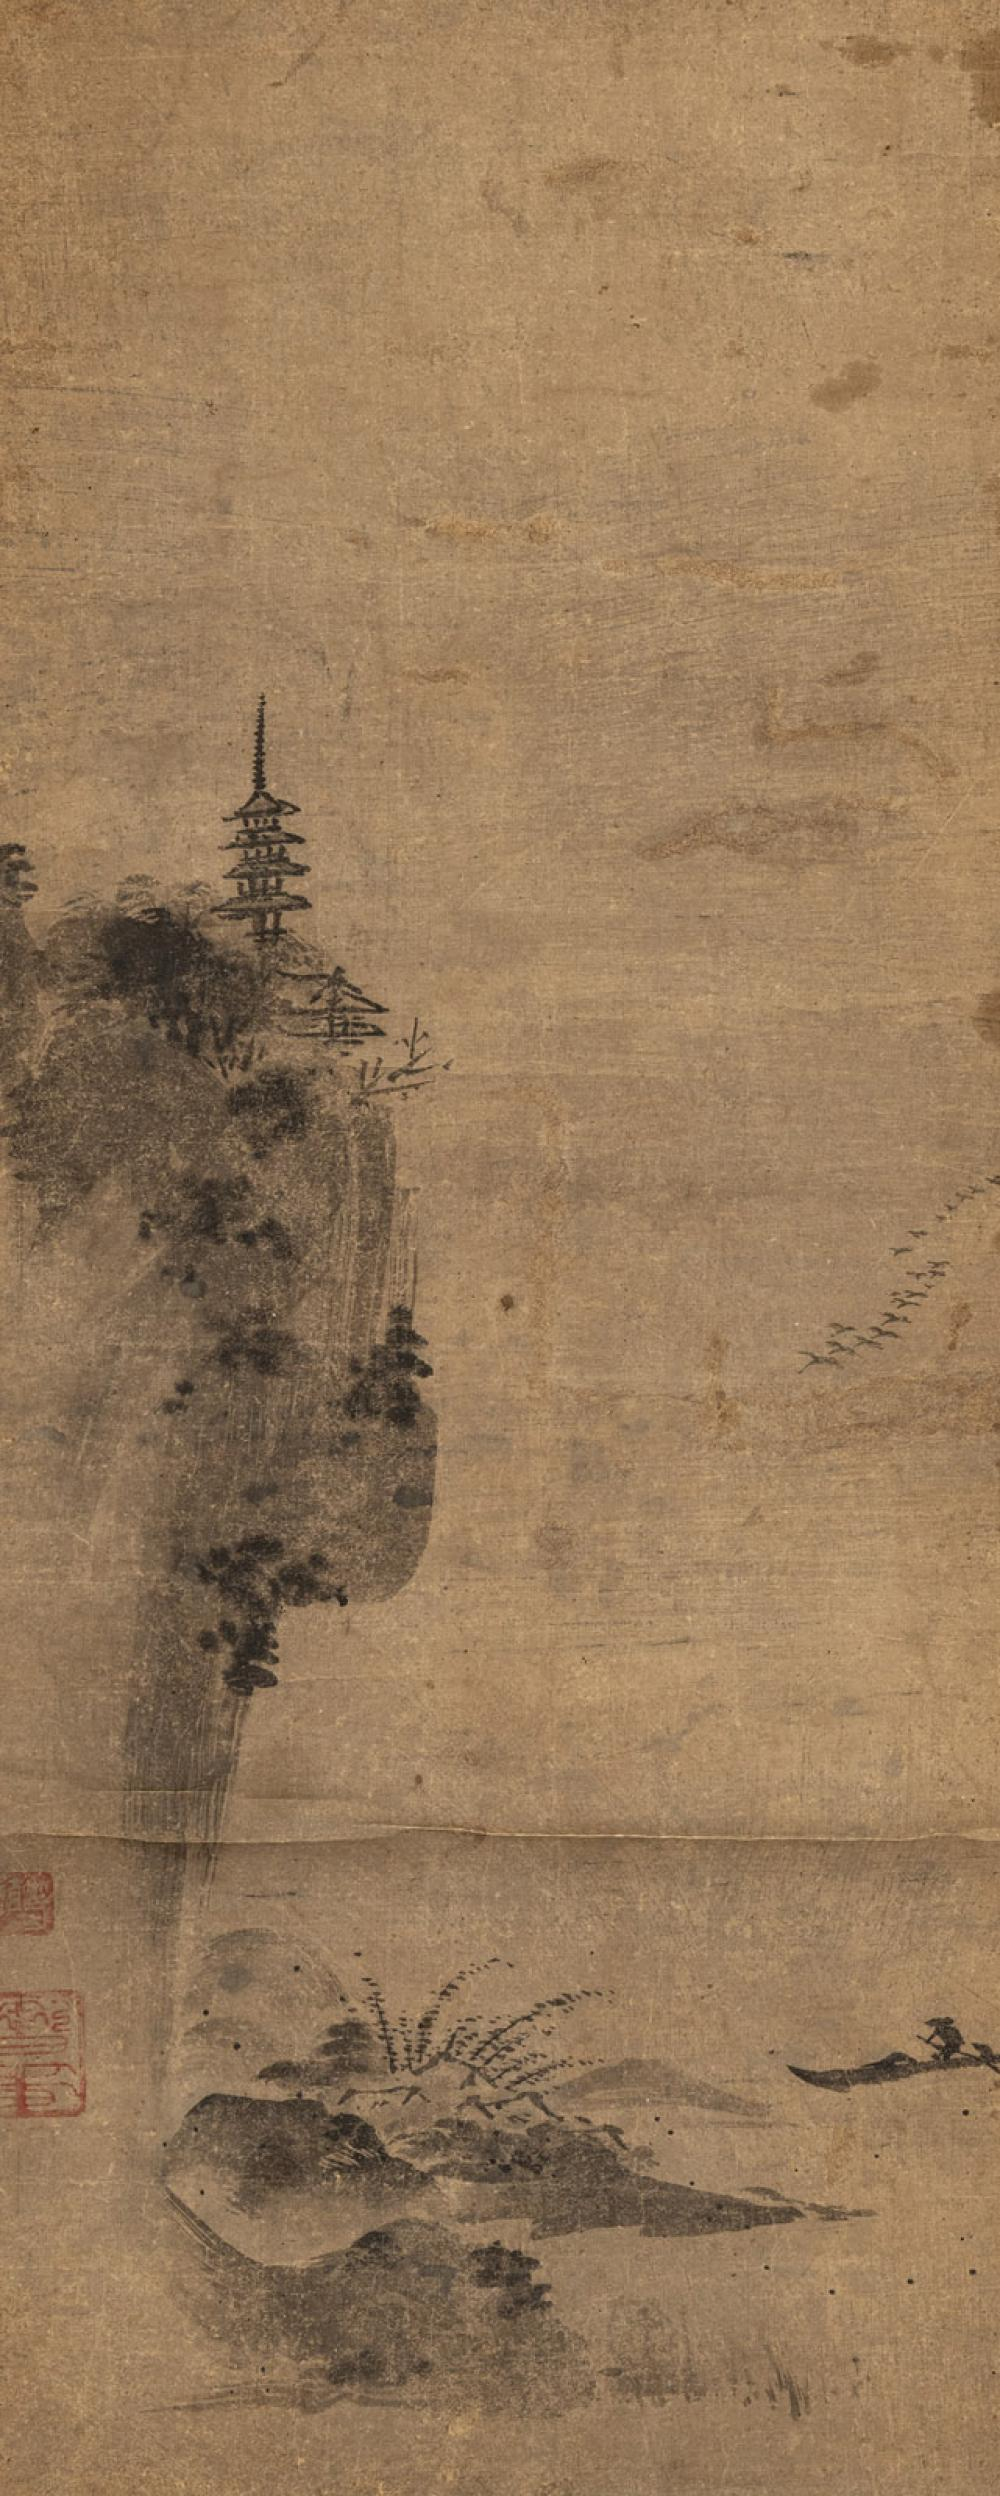 A HANGING SCROLL WITH A PAGODA IN A MOUNTAIN LANDSCAPE